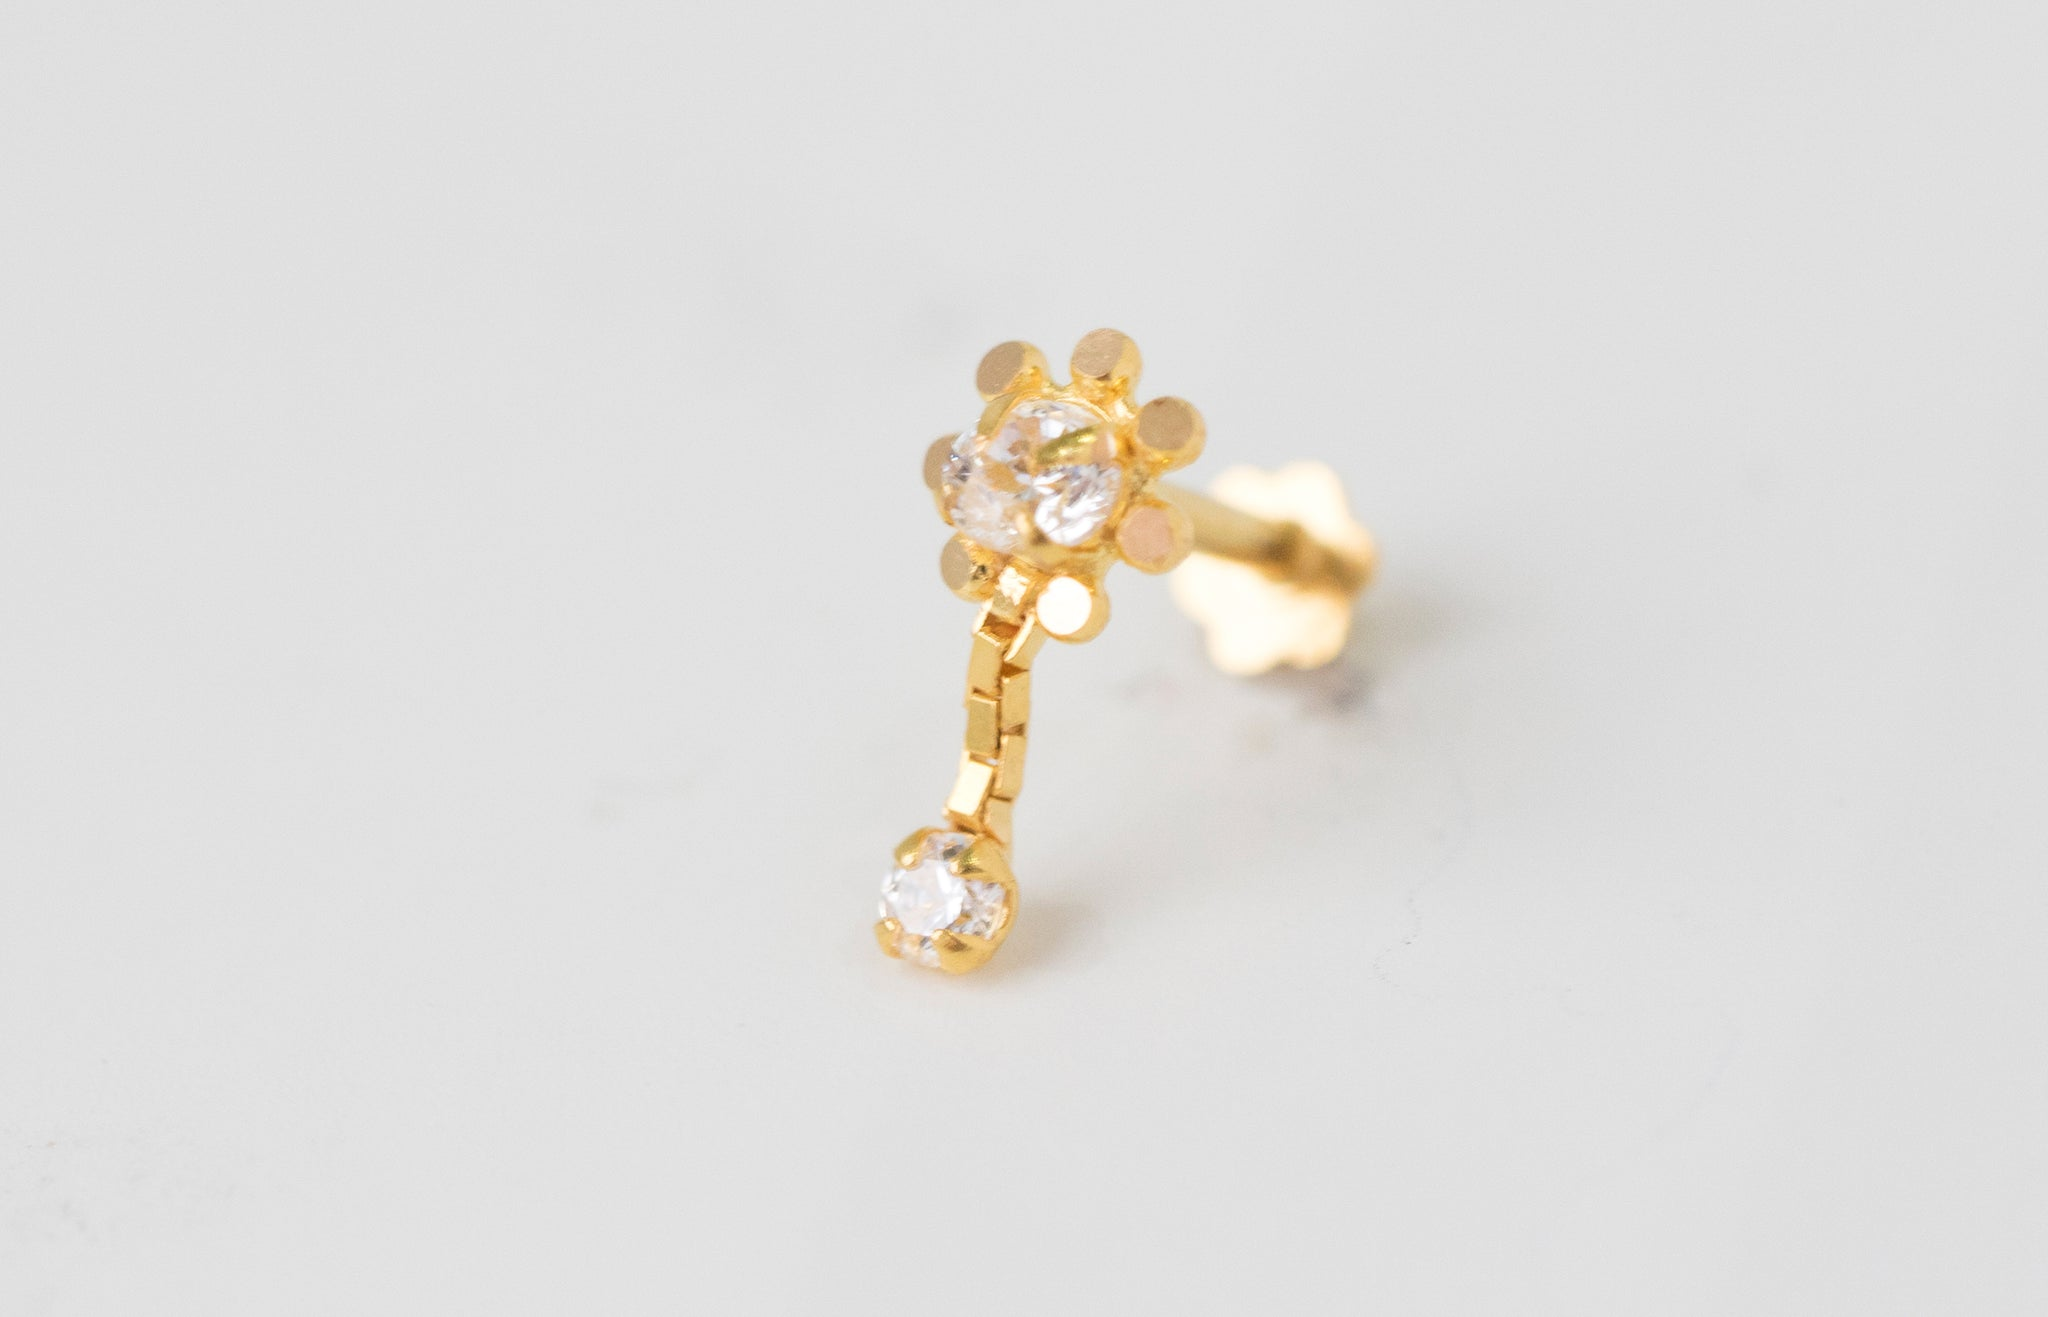 18ct Yellow Gold Screw Back Drop Nose Stud set with Cubic Zirconias NIP-4-900i